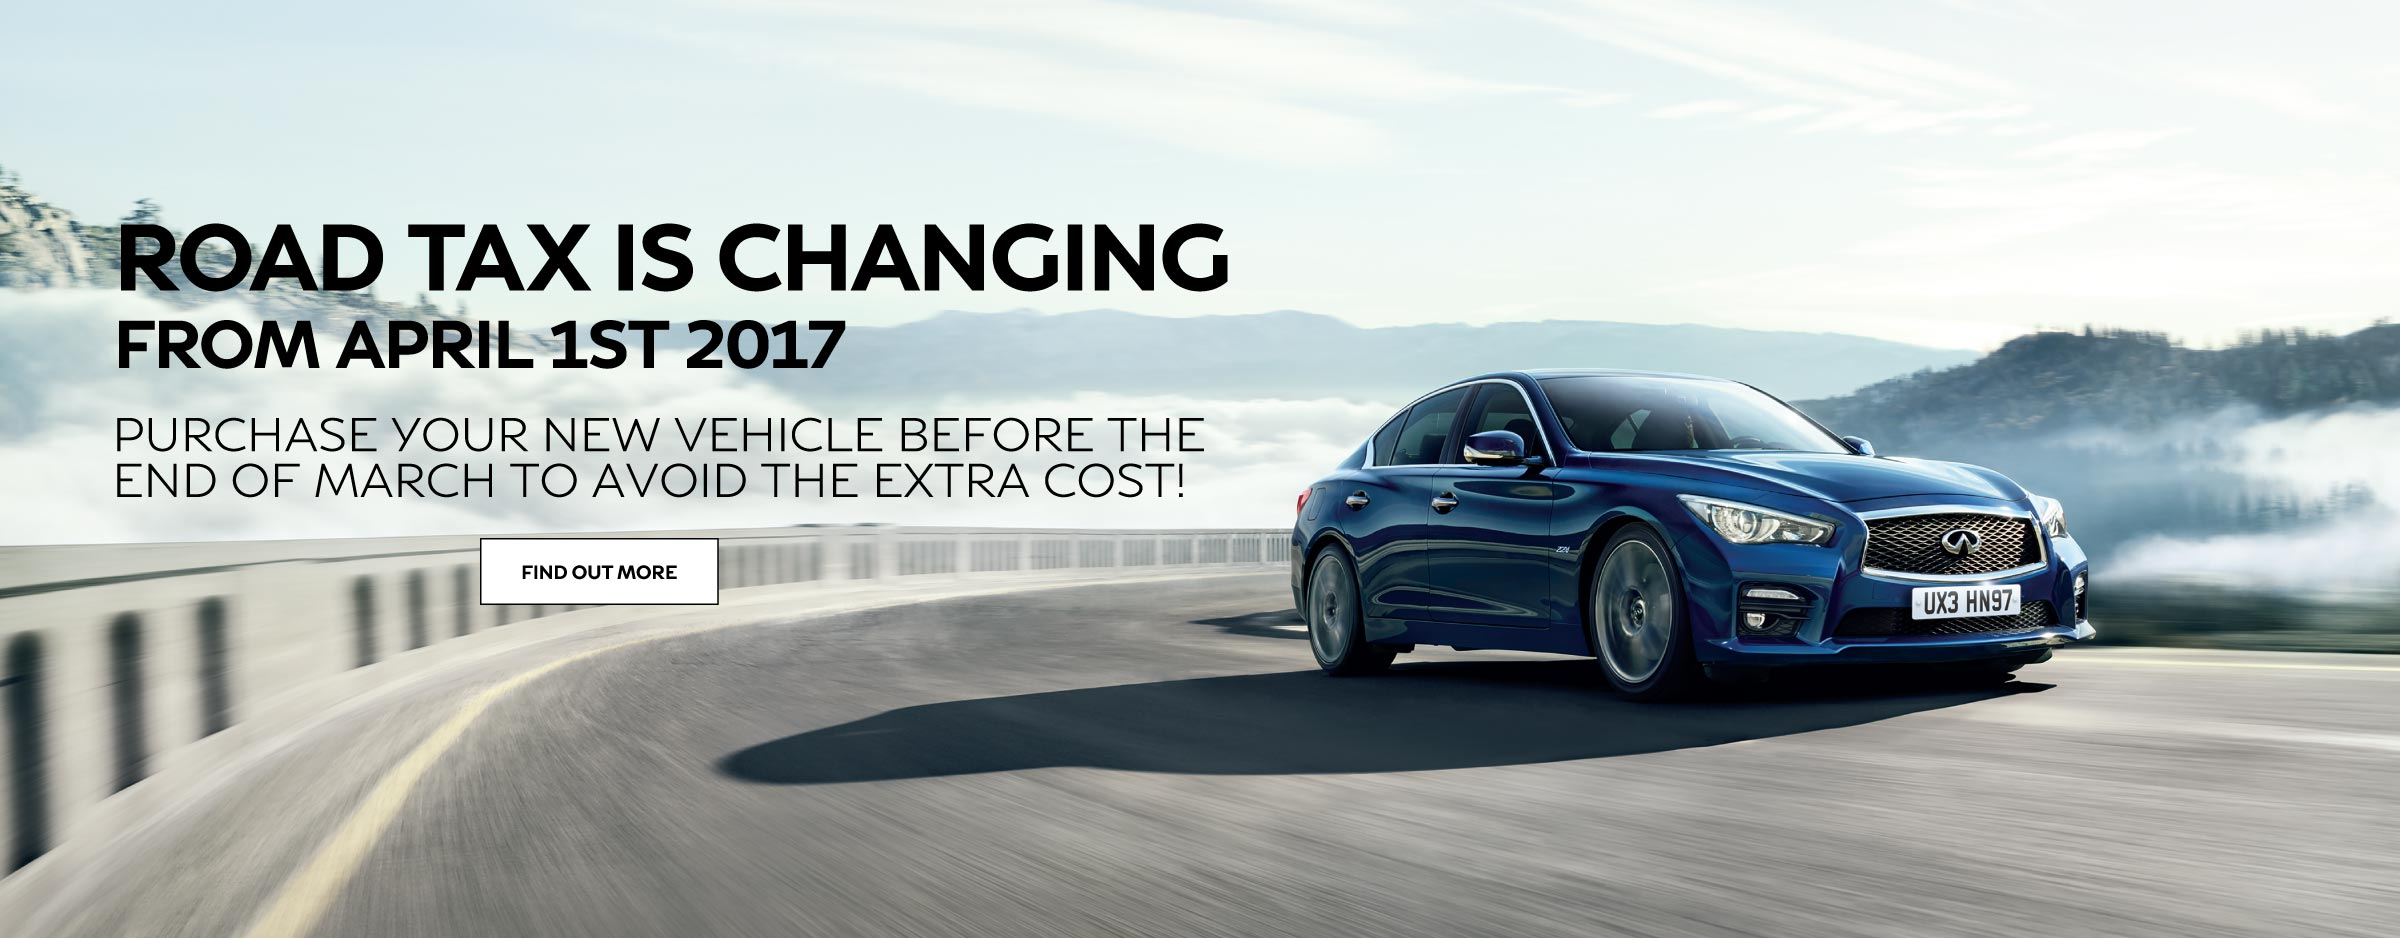 Road Tax Changes April 2017 - Infiniti Newcastle